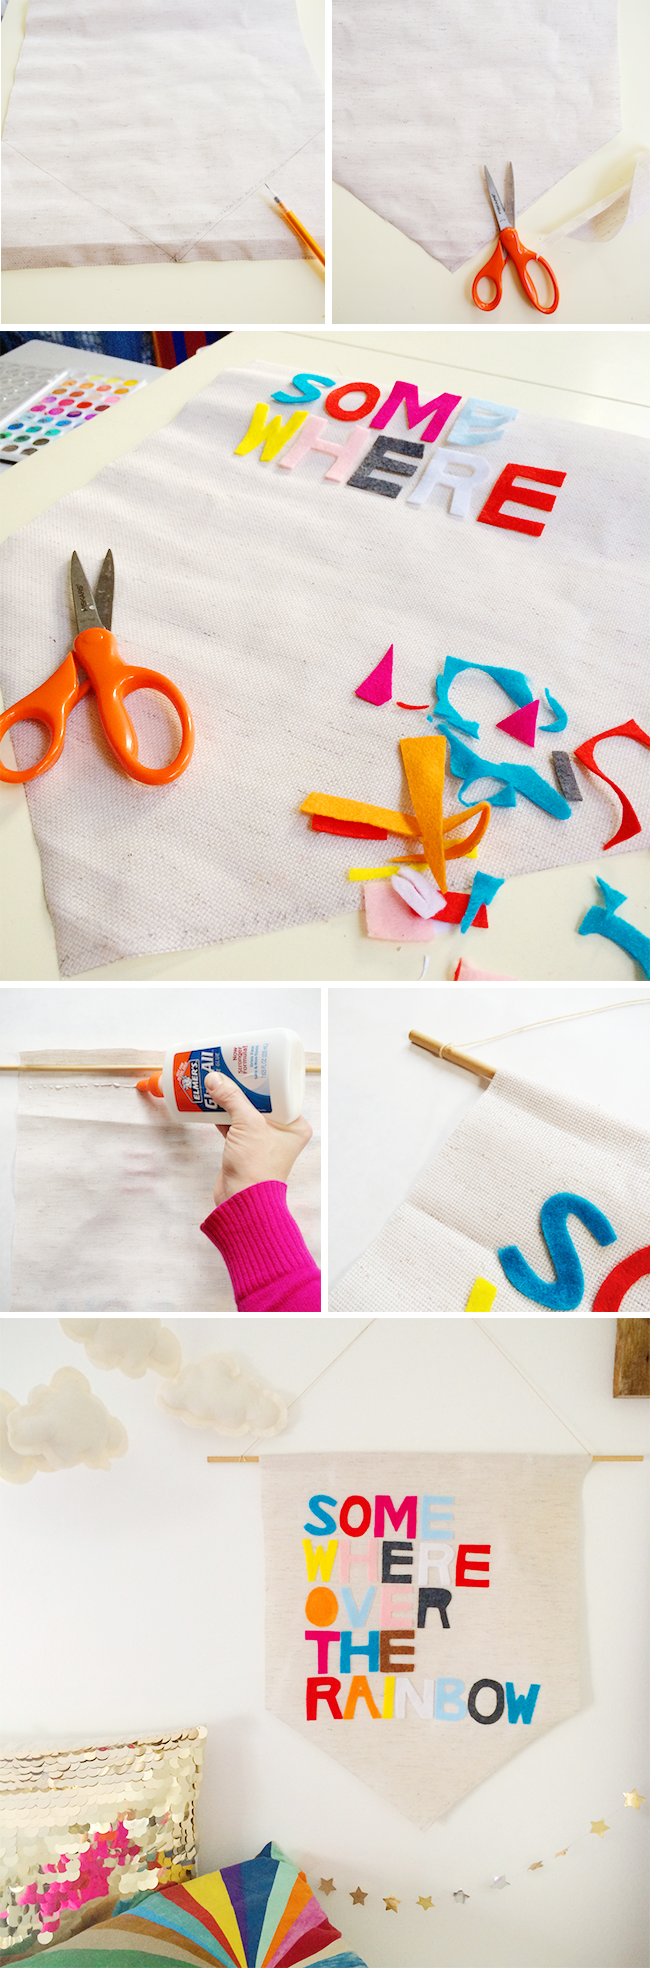 A-Lovely-Lark-DIY-No-Sew-Banner